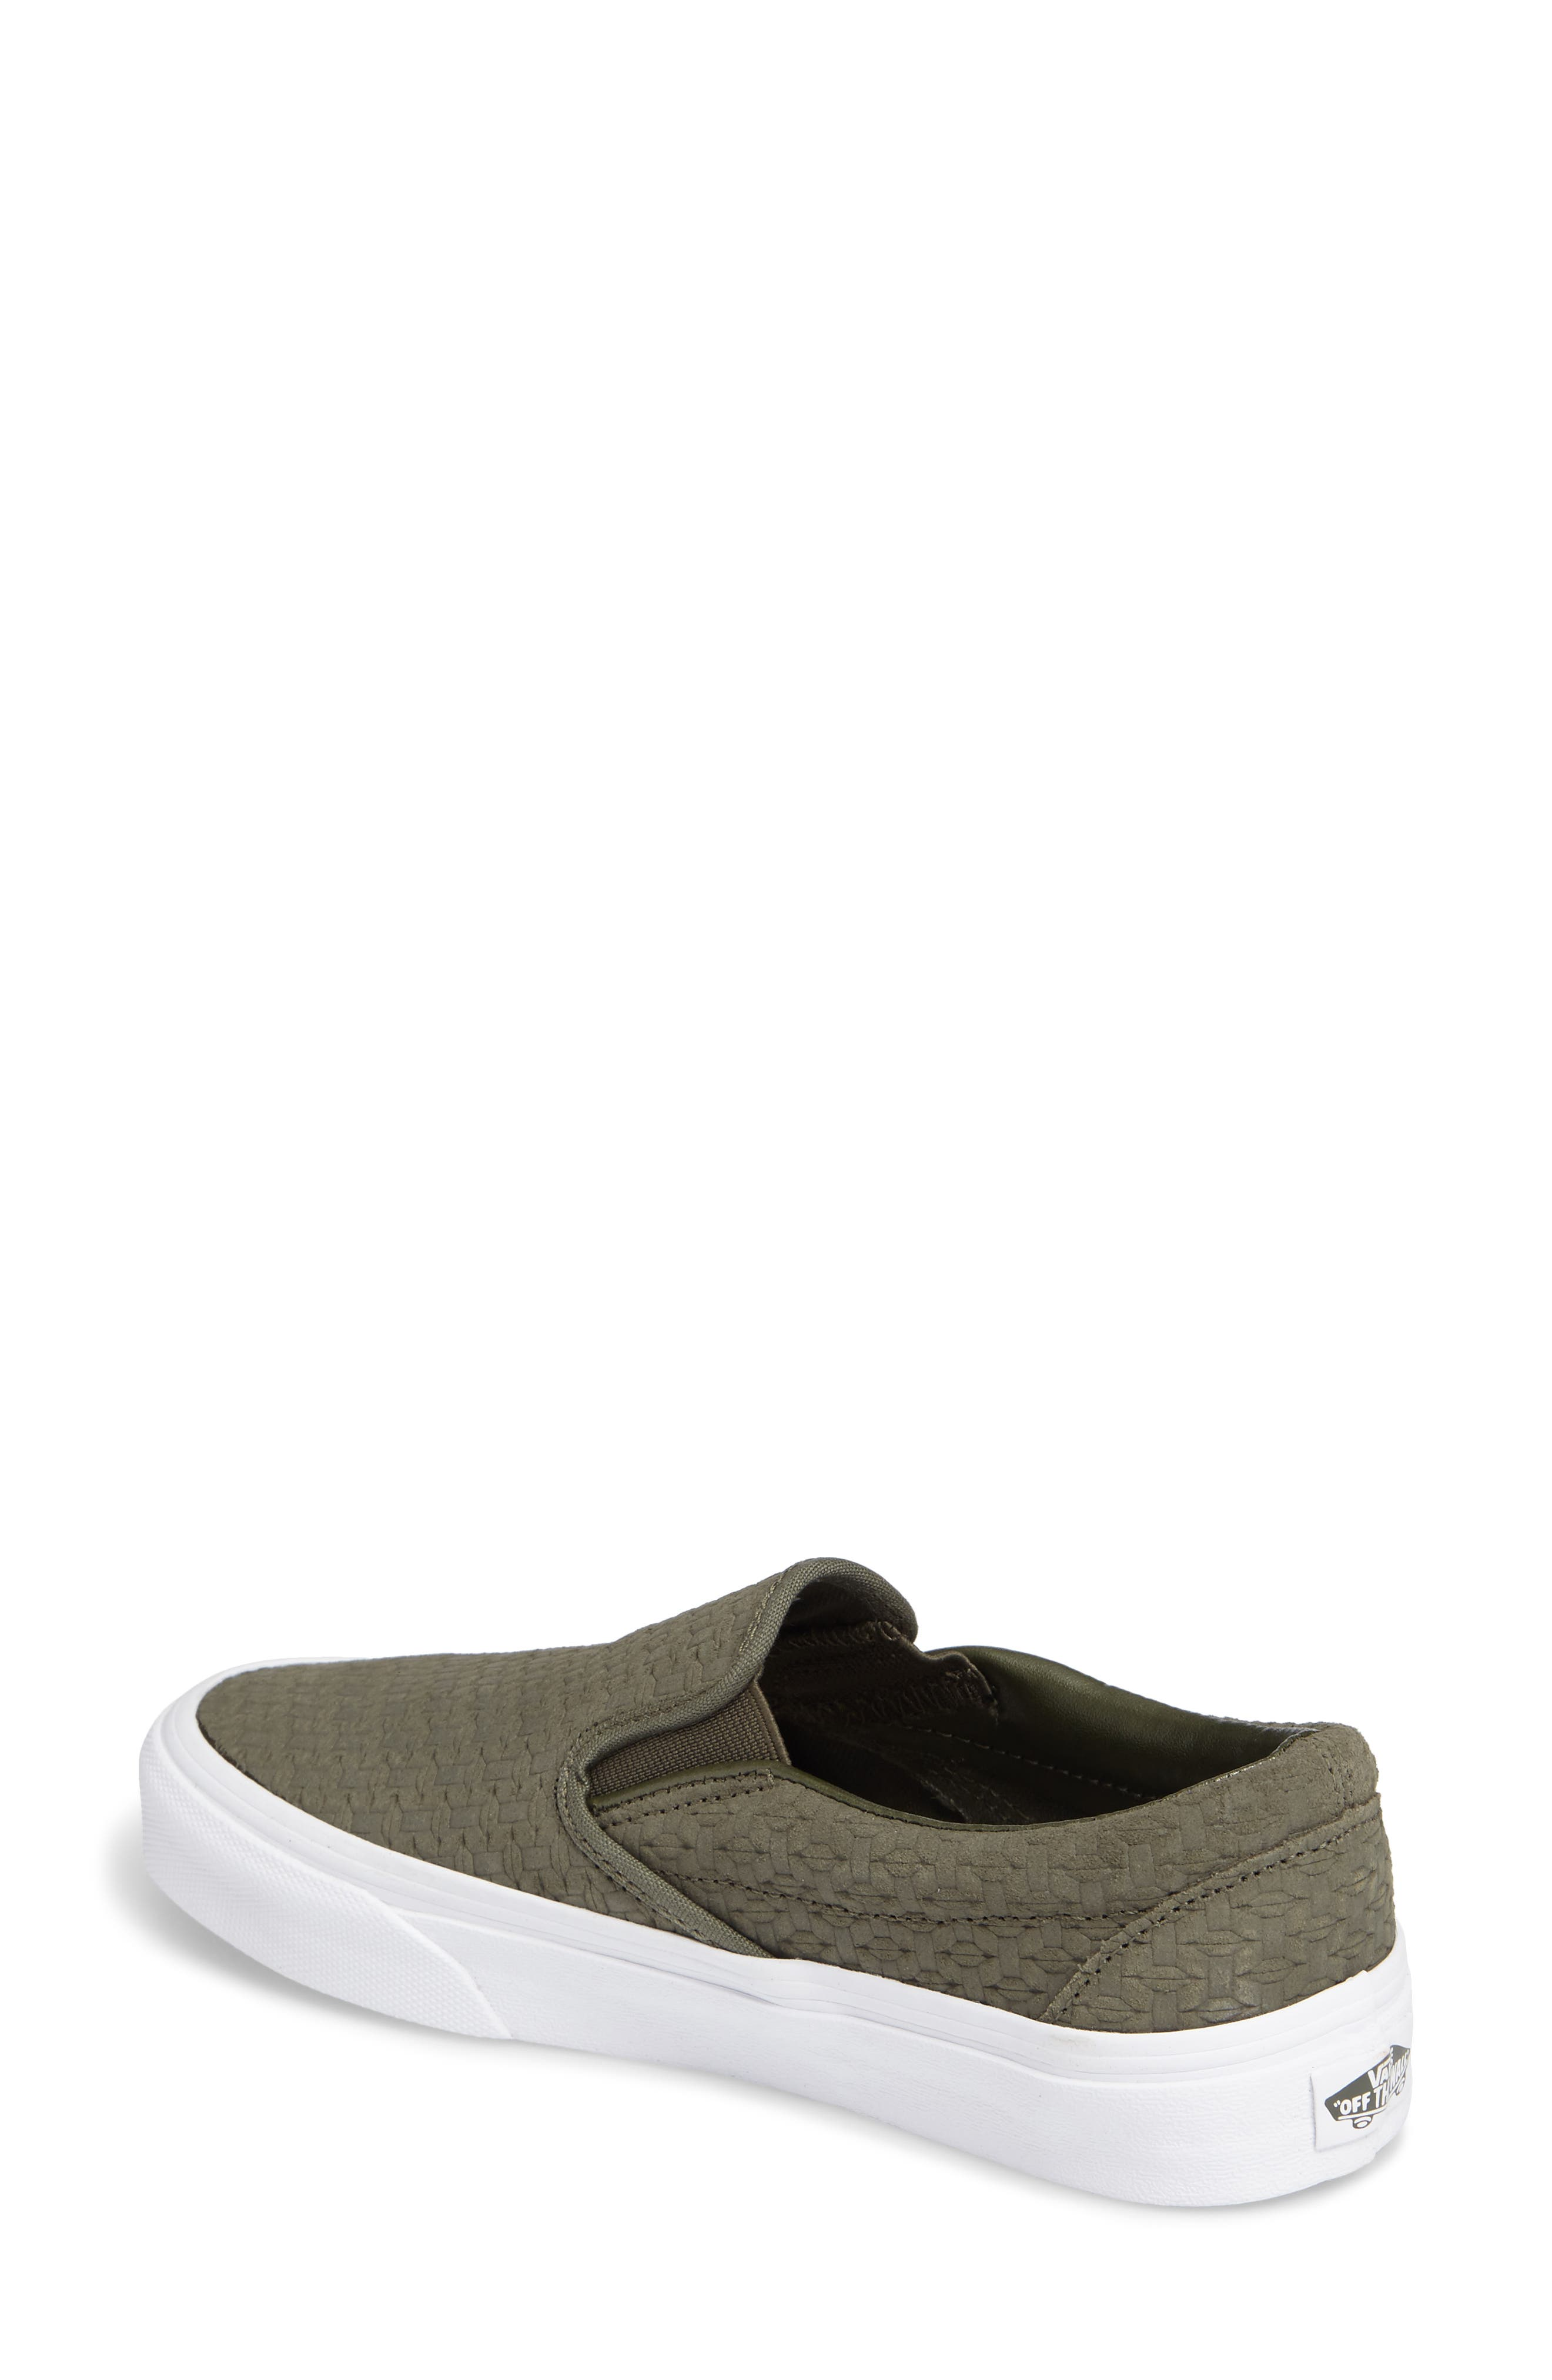 Classic Slip-On Sneaker,                             Alternate thumbnail 153, color,